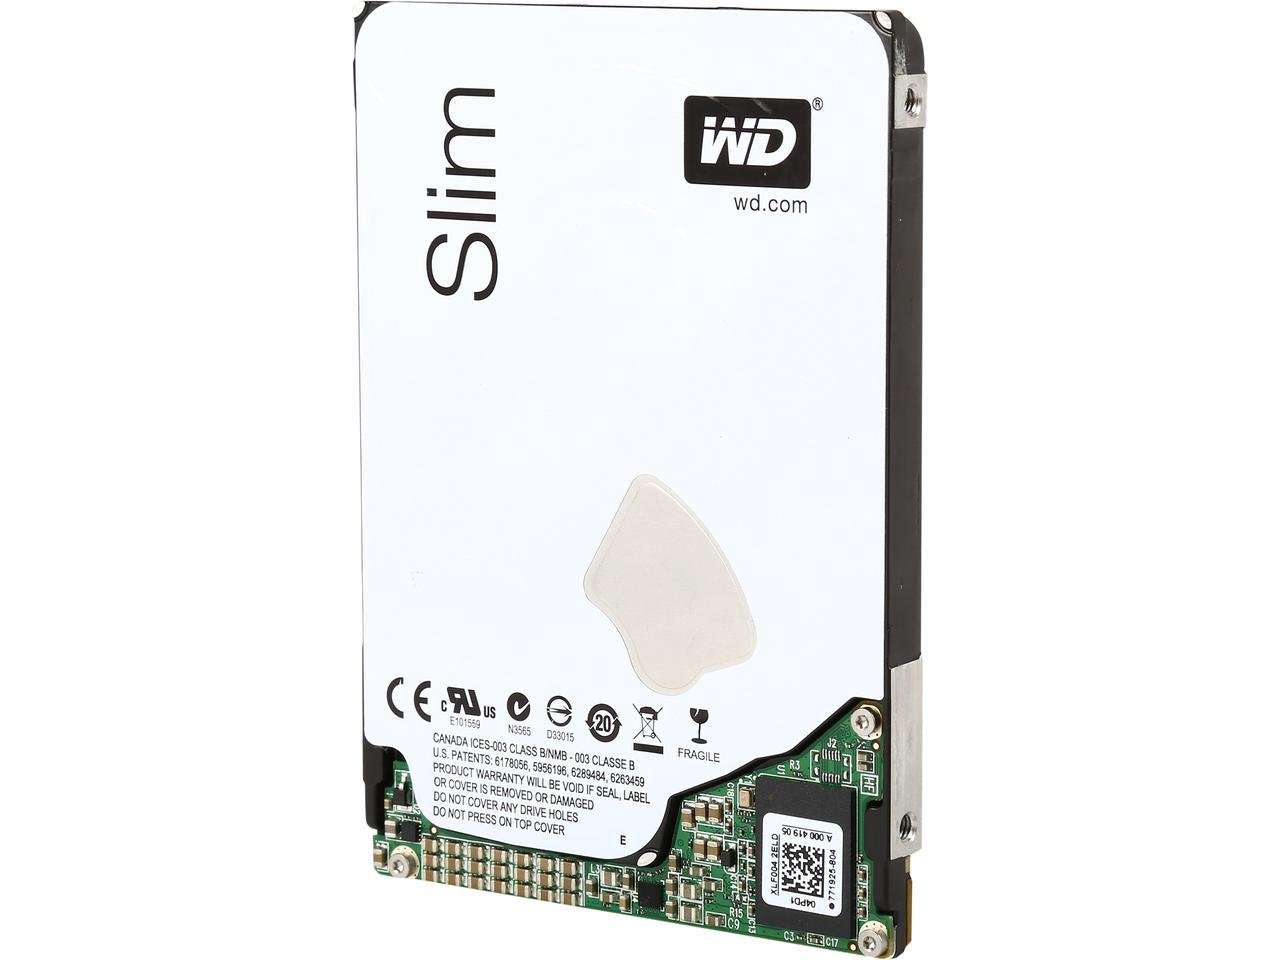 Western Digital Wd10s21x 1tb Sata 6gb S 54k Rpm 16mb To Make It More Fun We Going Tear Pieces Pretty New Seagate Sshd Solid State Hybrid Hard Drive Computers Accessories